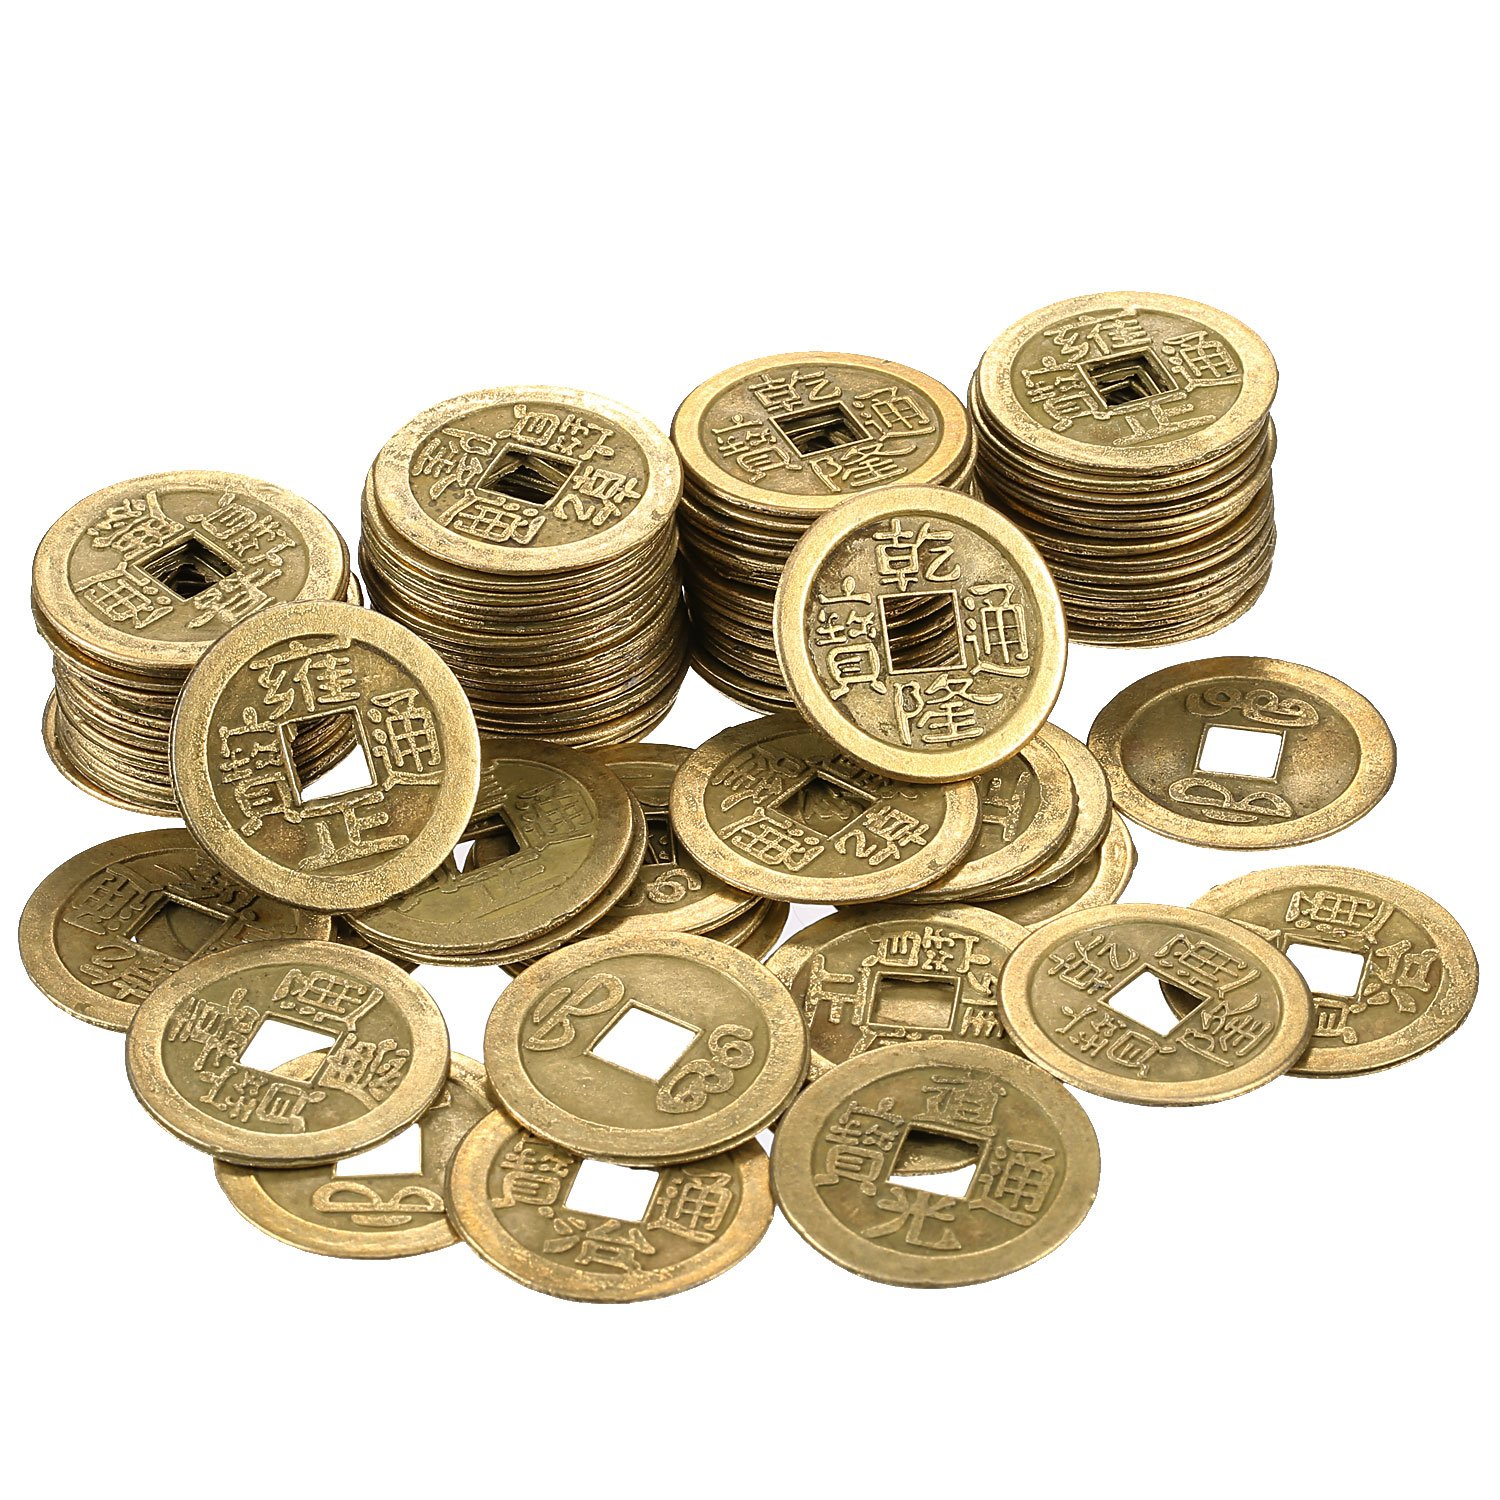 Hestya 100 Pieces 1 Inch Chinese Fortune Coins Feng Shui I-ching Coins Chinese Good Luck Coins Ancient Chinese Dynasty Time Coin by Hestya